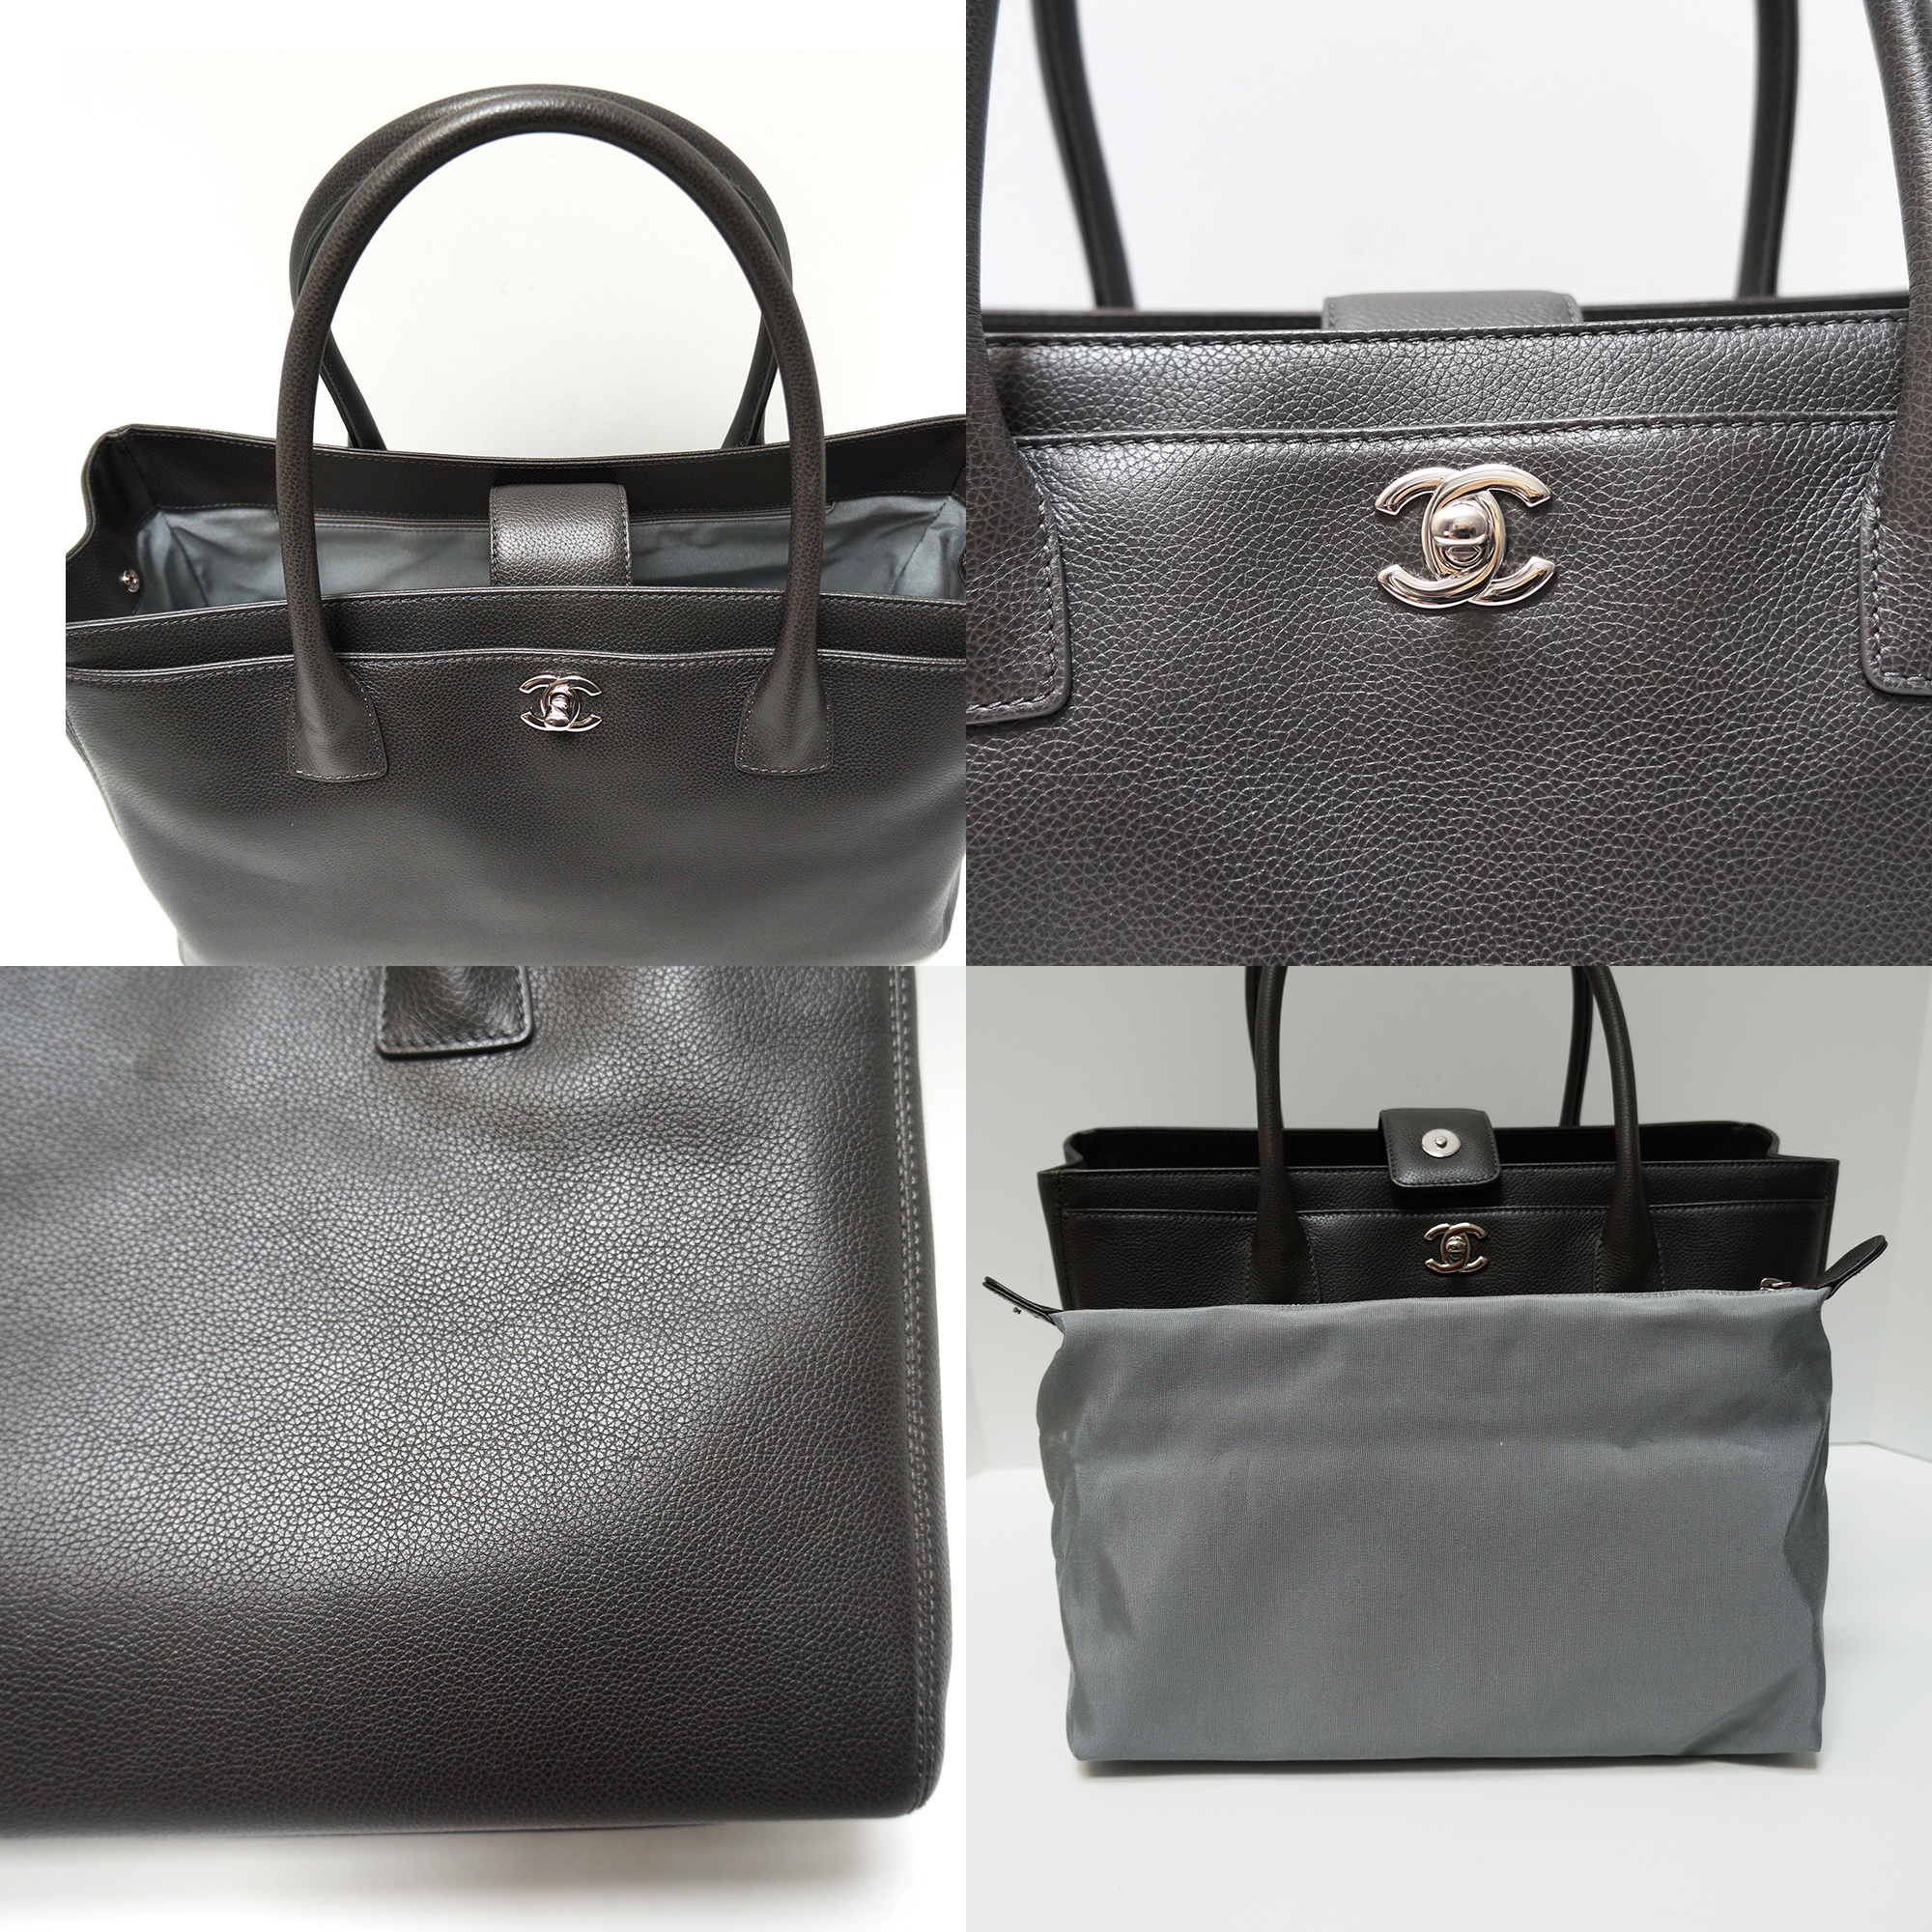 cb48b3f41479cb Chanel Cerf Tote Sizes | Stanford Center for Opportunity Policy in ...